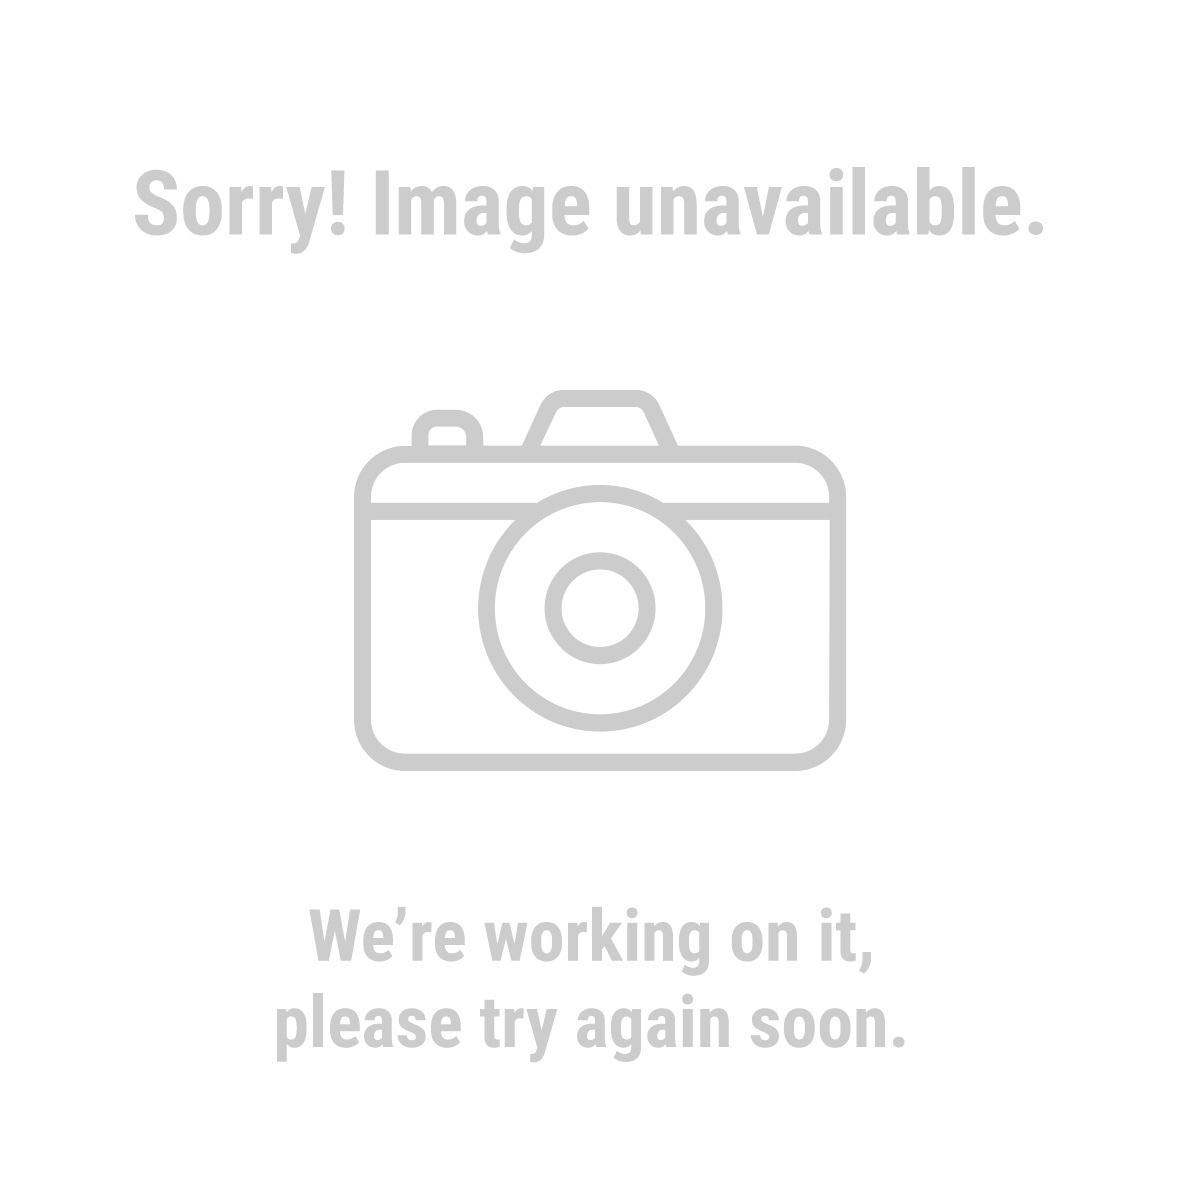 "90999 4"" x 3/4"" Stem Swivel Caster with Brake"